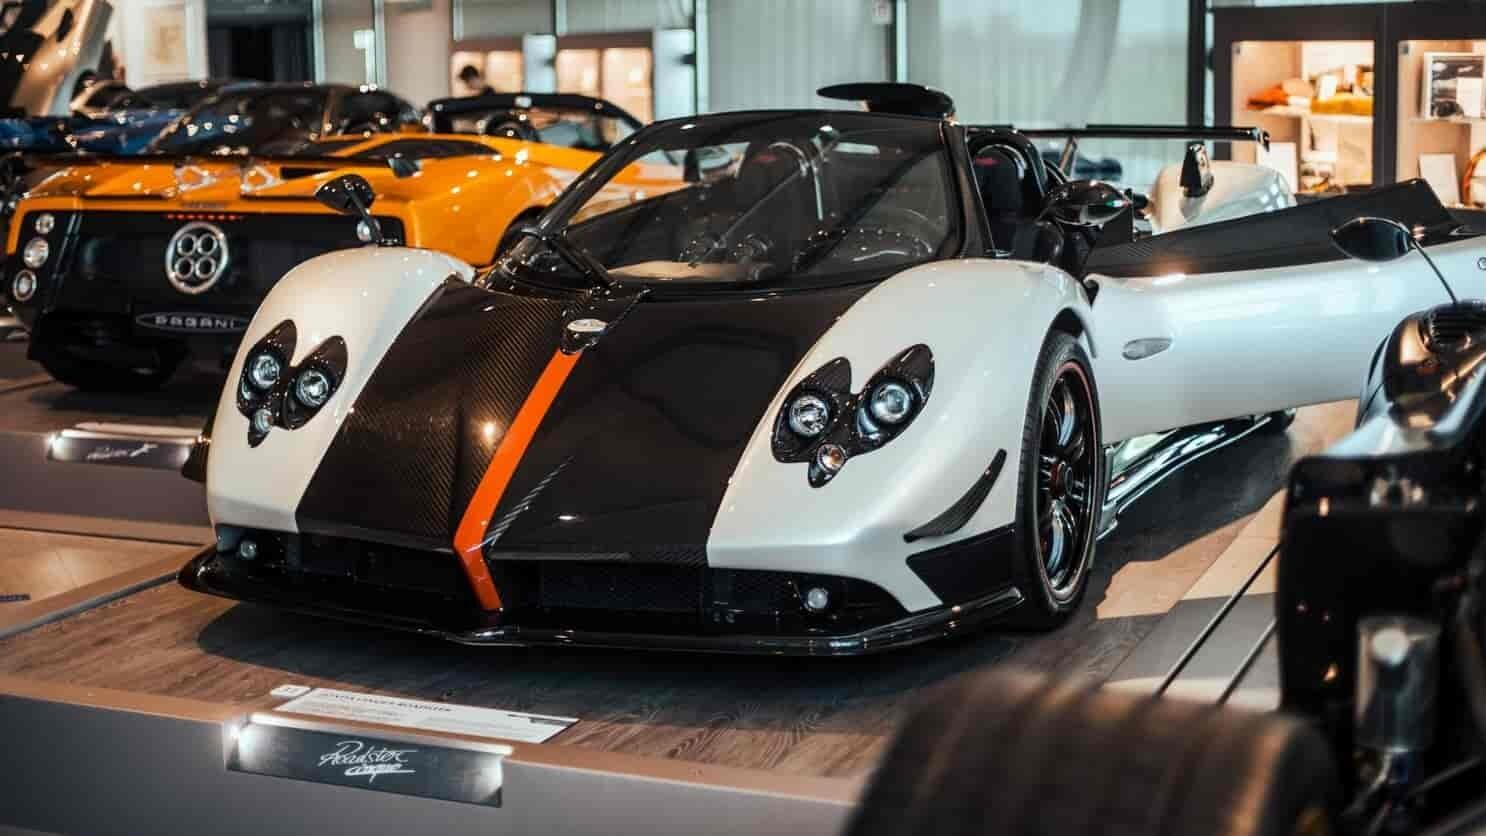 Take a look inside the incredible Pagani museum